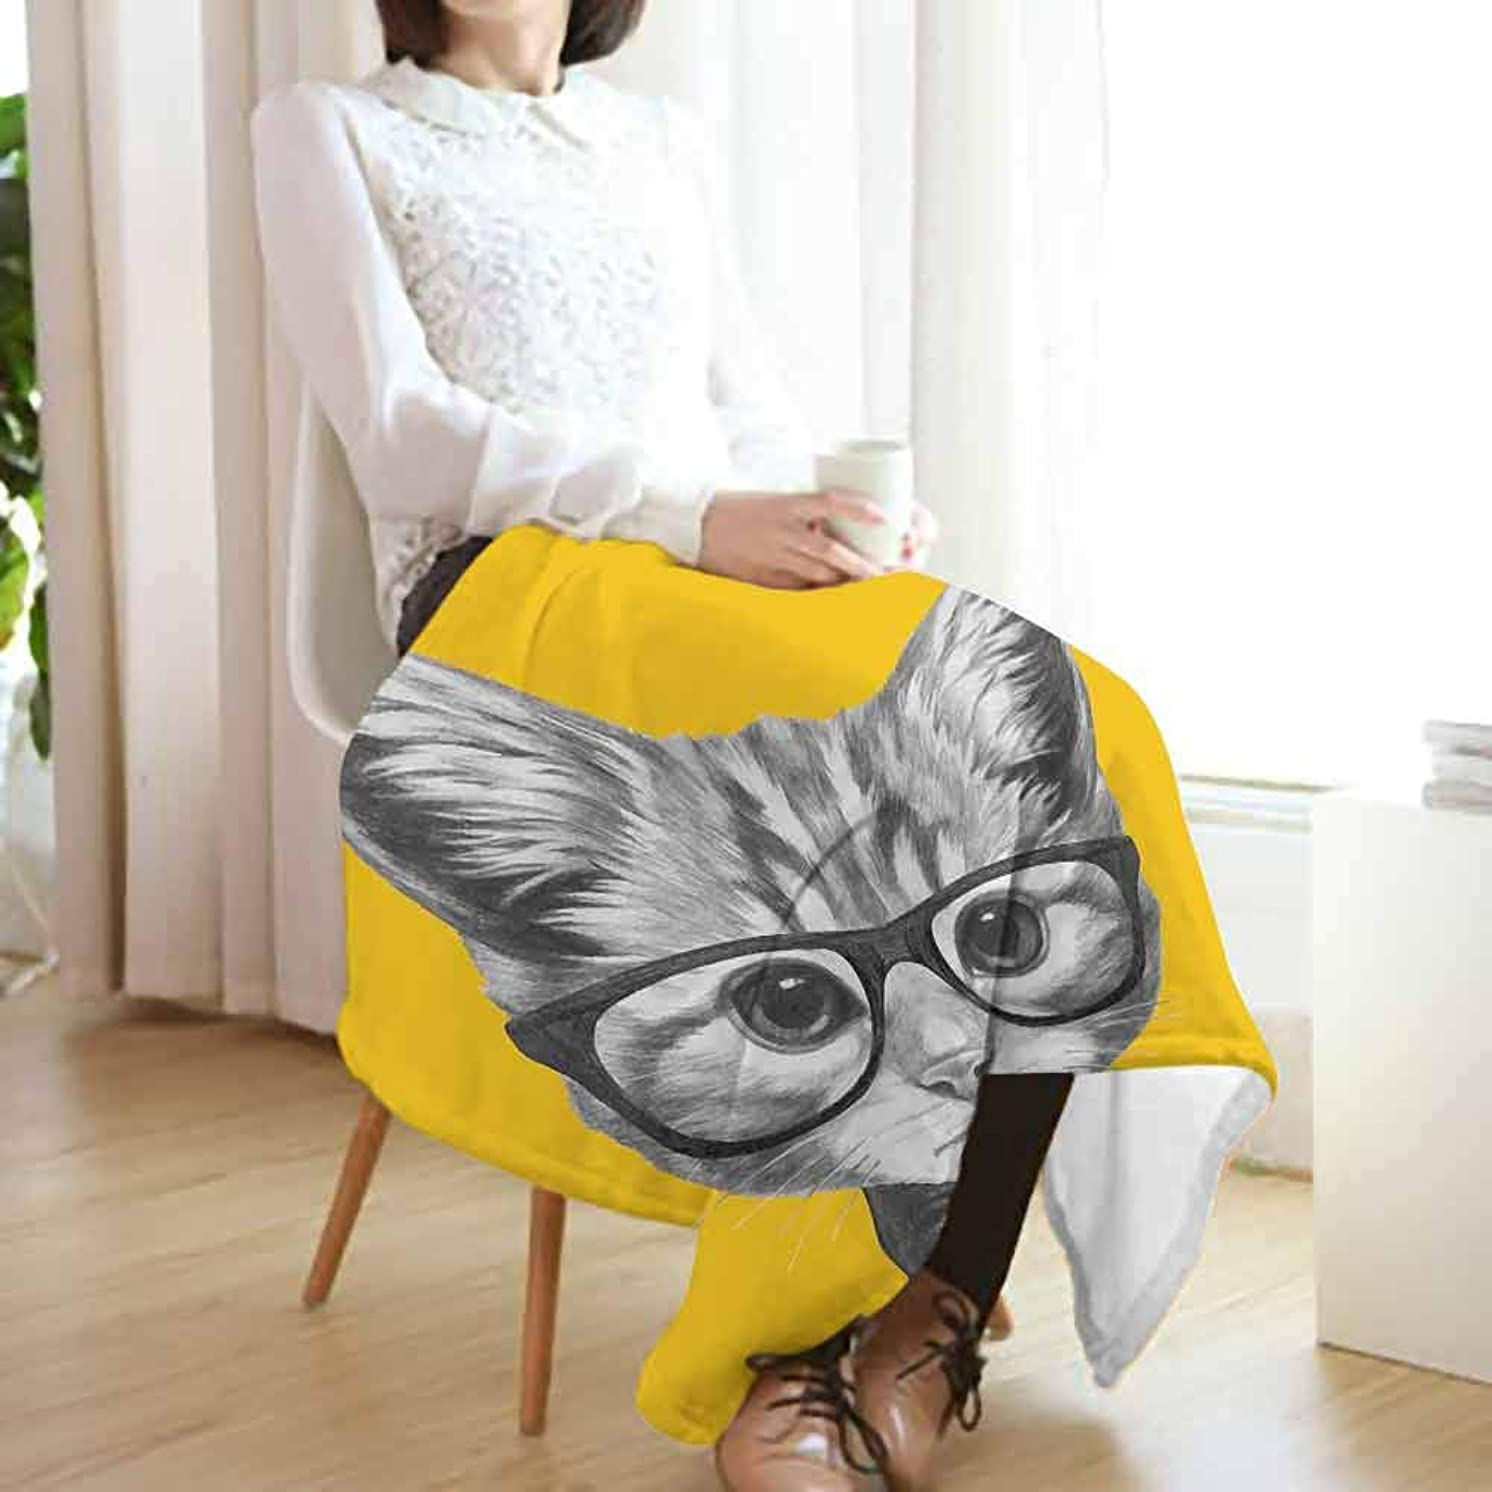 Animal Flannel Fleece Blanket,Sketchy Hand Drawn Design Baby Hipster Cat Cute Kitten with Glasses Image Print Lightweight Blanket for Couch(90